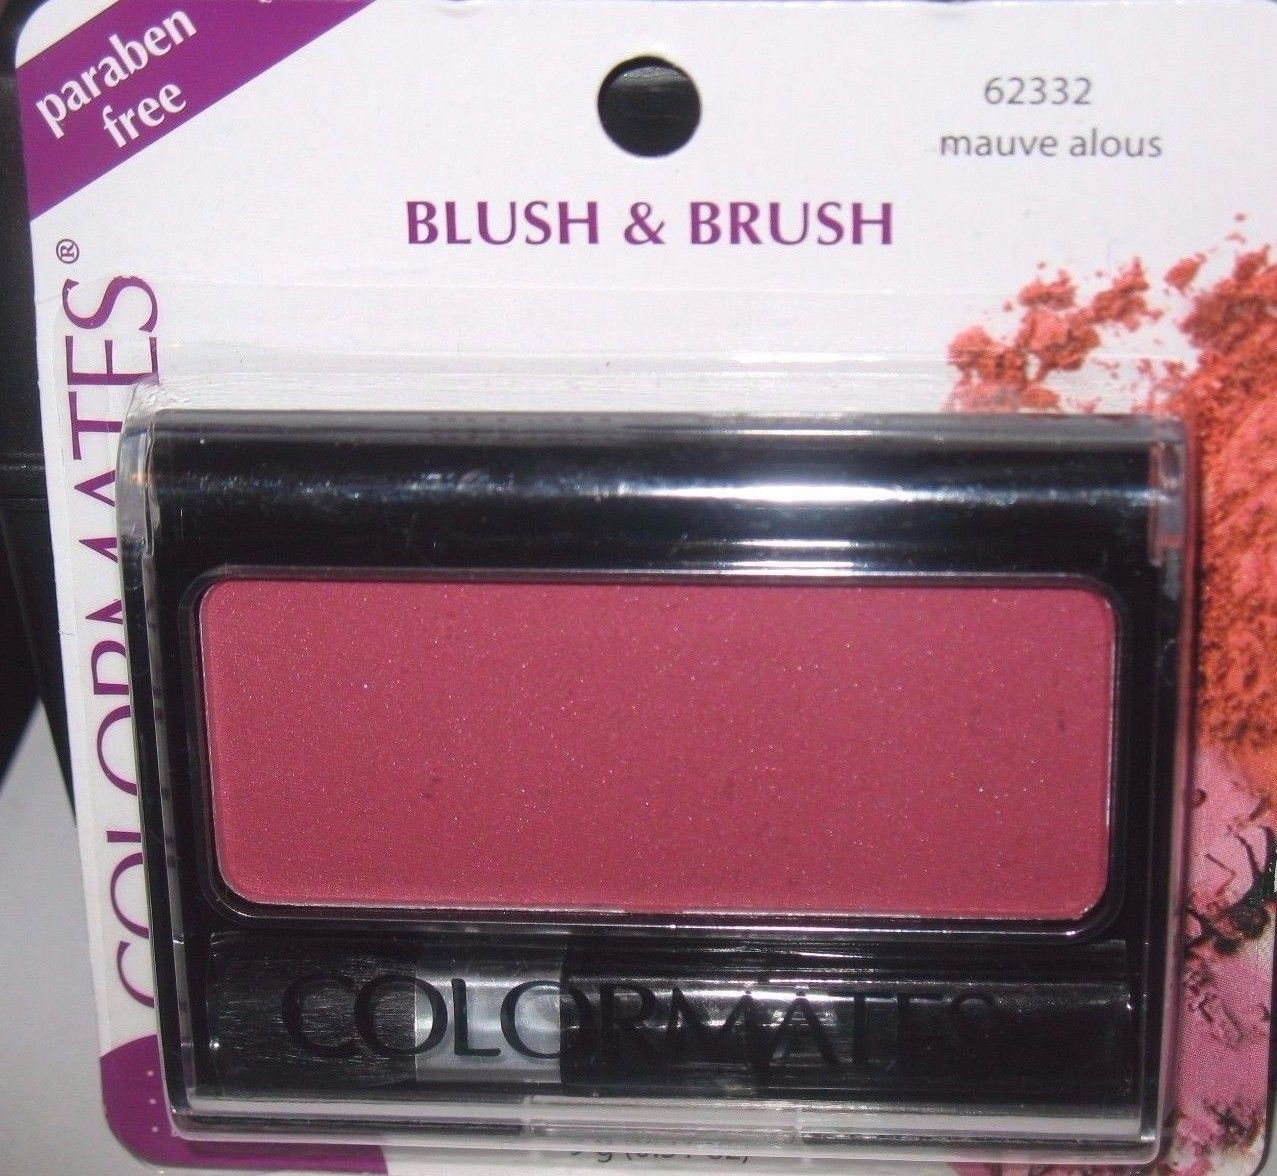 Primary image for Colormates Blush & Brush (Mauve alous) Paraben Free~ Long Wearing~ New/Sealed